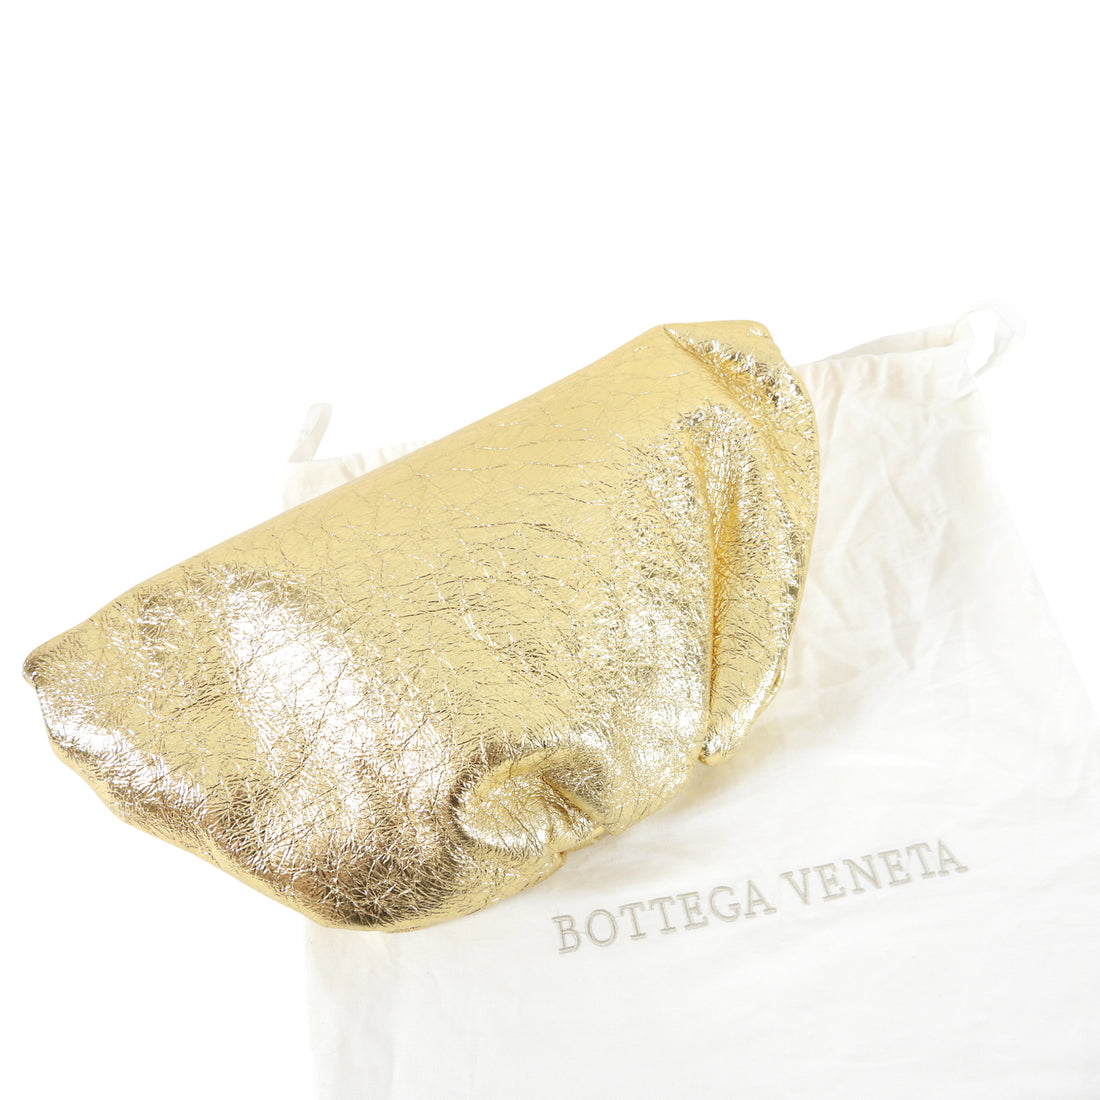 Bottega Veneta Gold Oro Wrinkle Large Leather The Pouch Clutch Bag